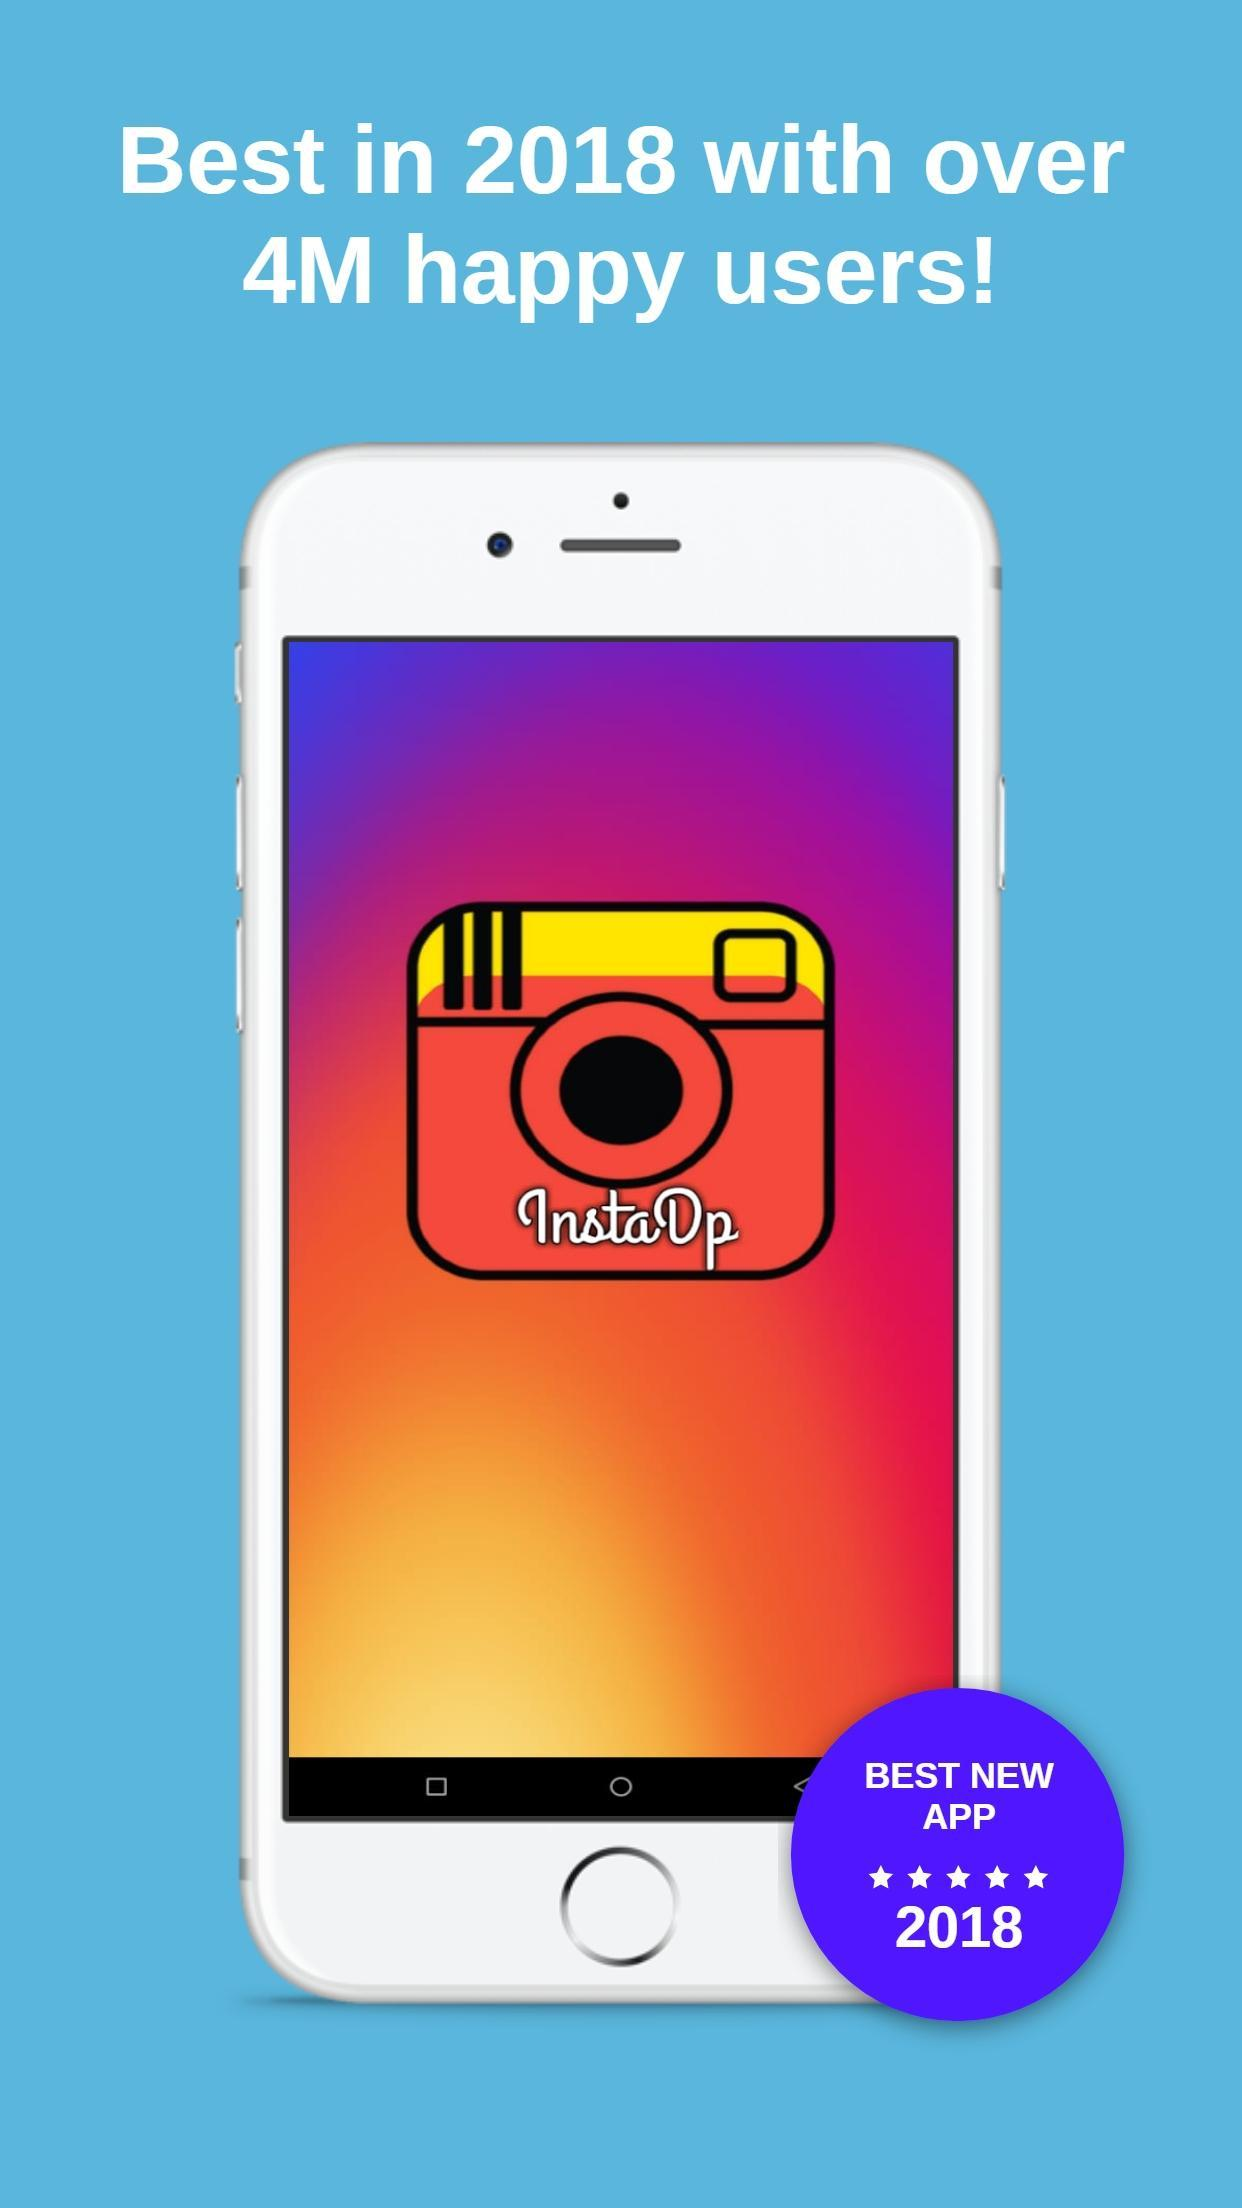 InstaDp - Save Instagram Profile Pictures in HD for Android - APK